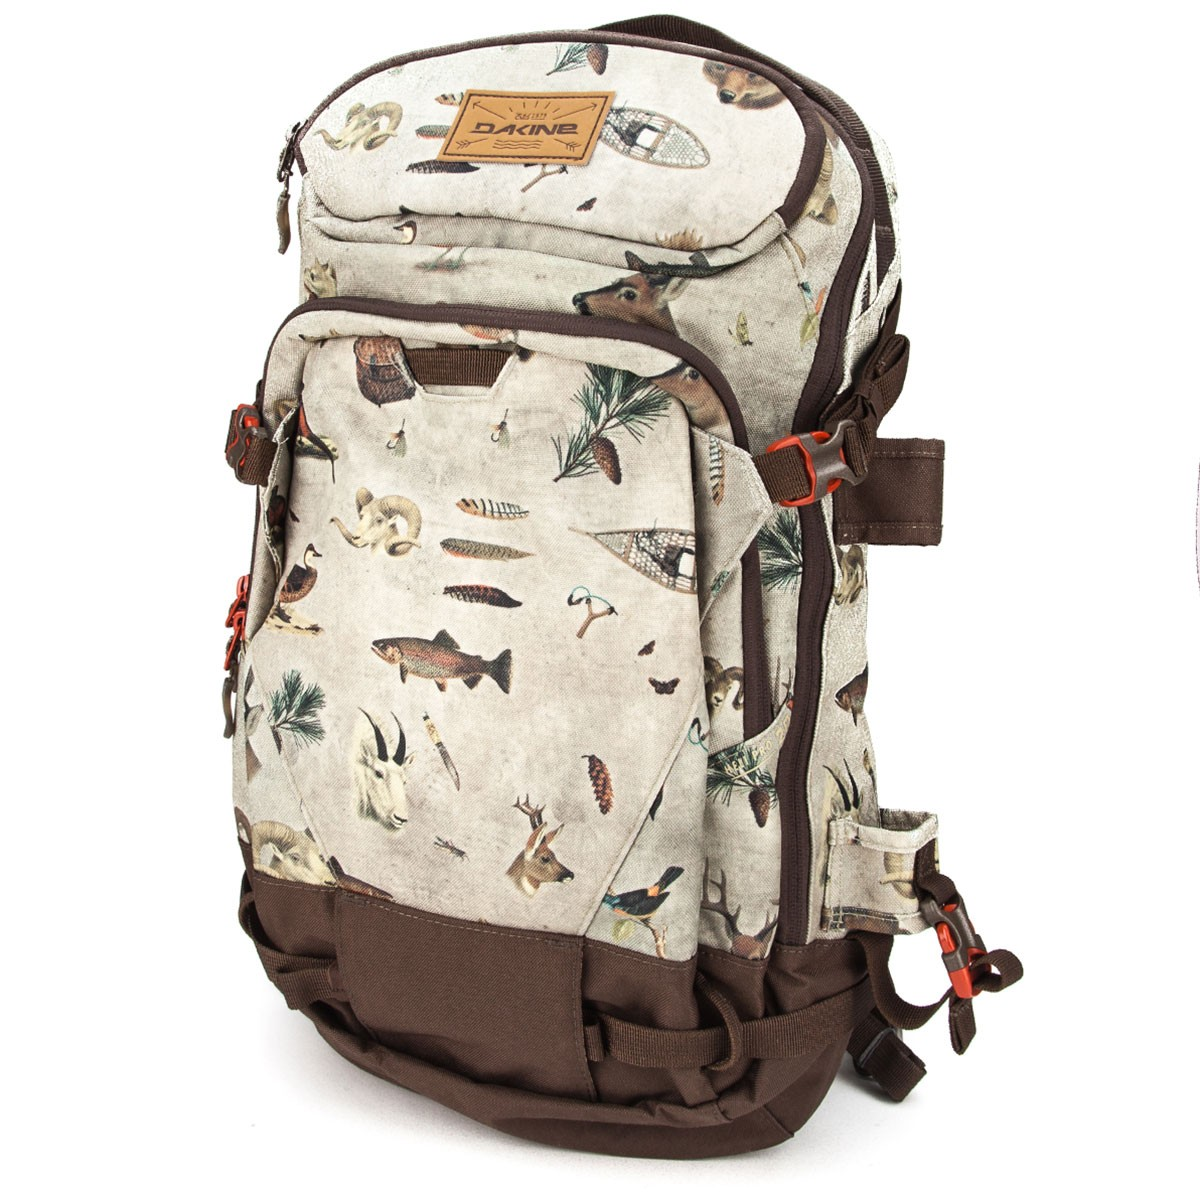 Heli Pro 20L Backpack - Trophy